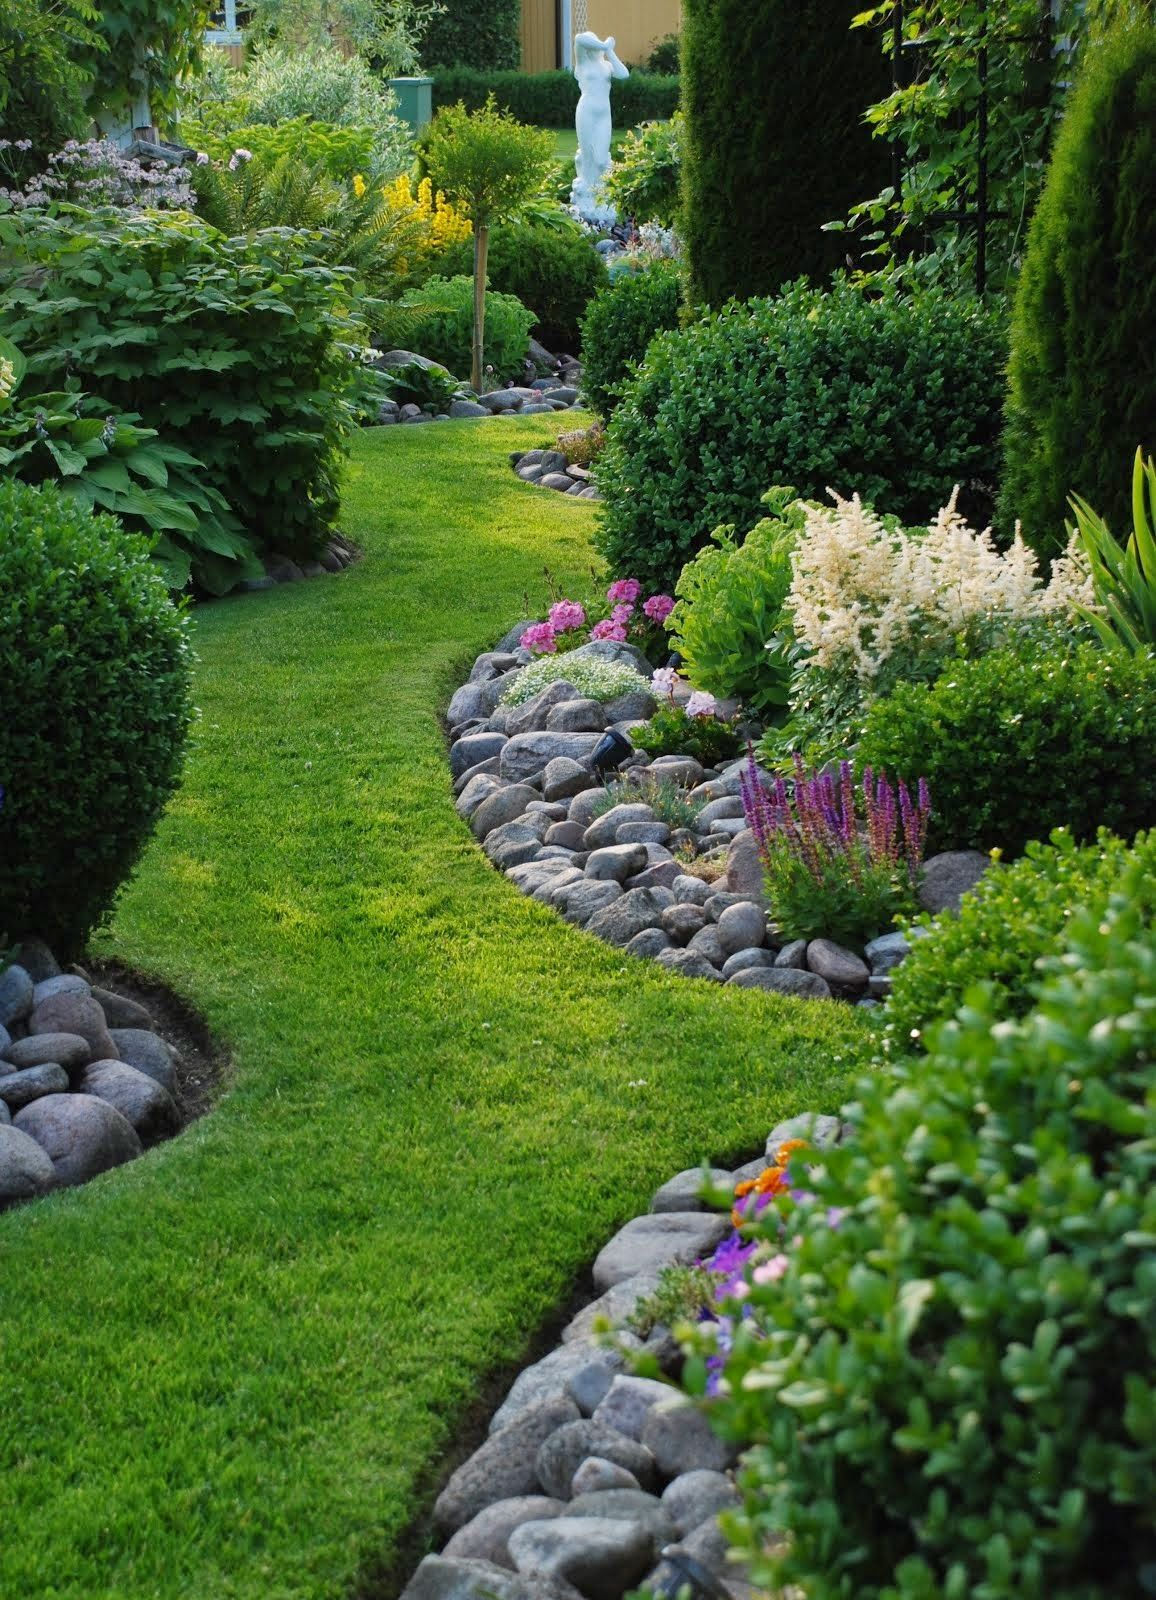 Natural Looking Garden Edging River Rocks Used Along Grass